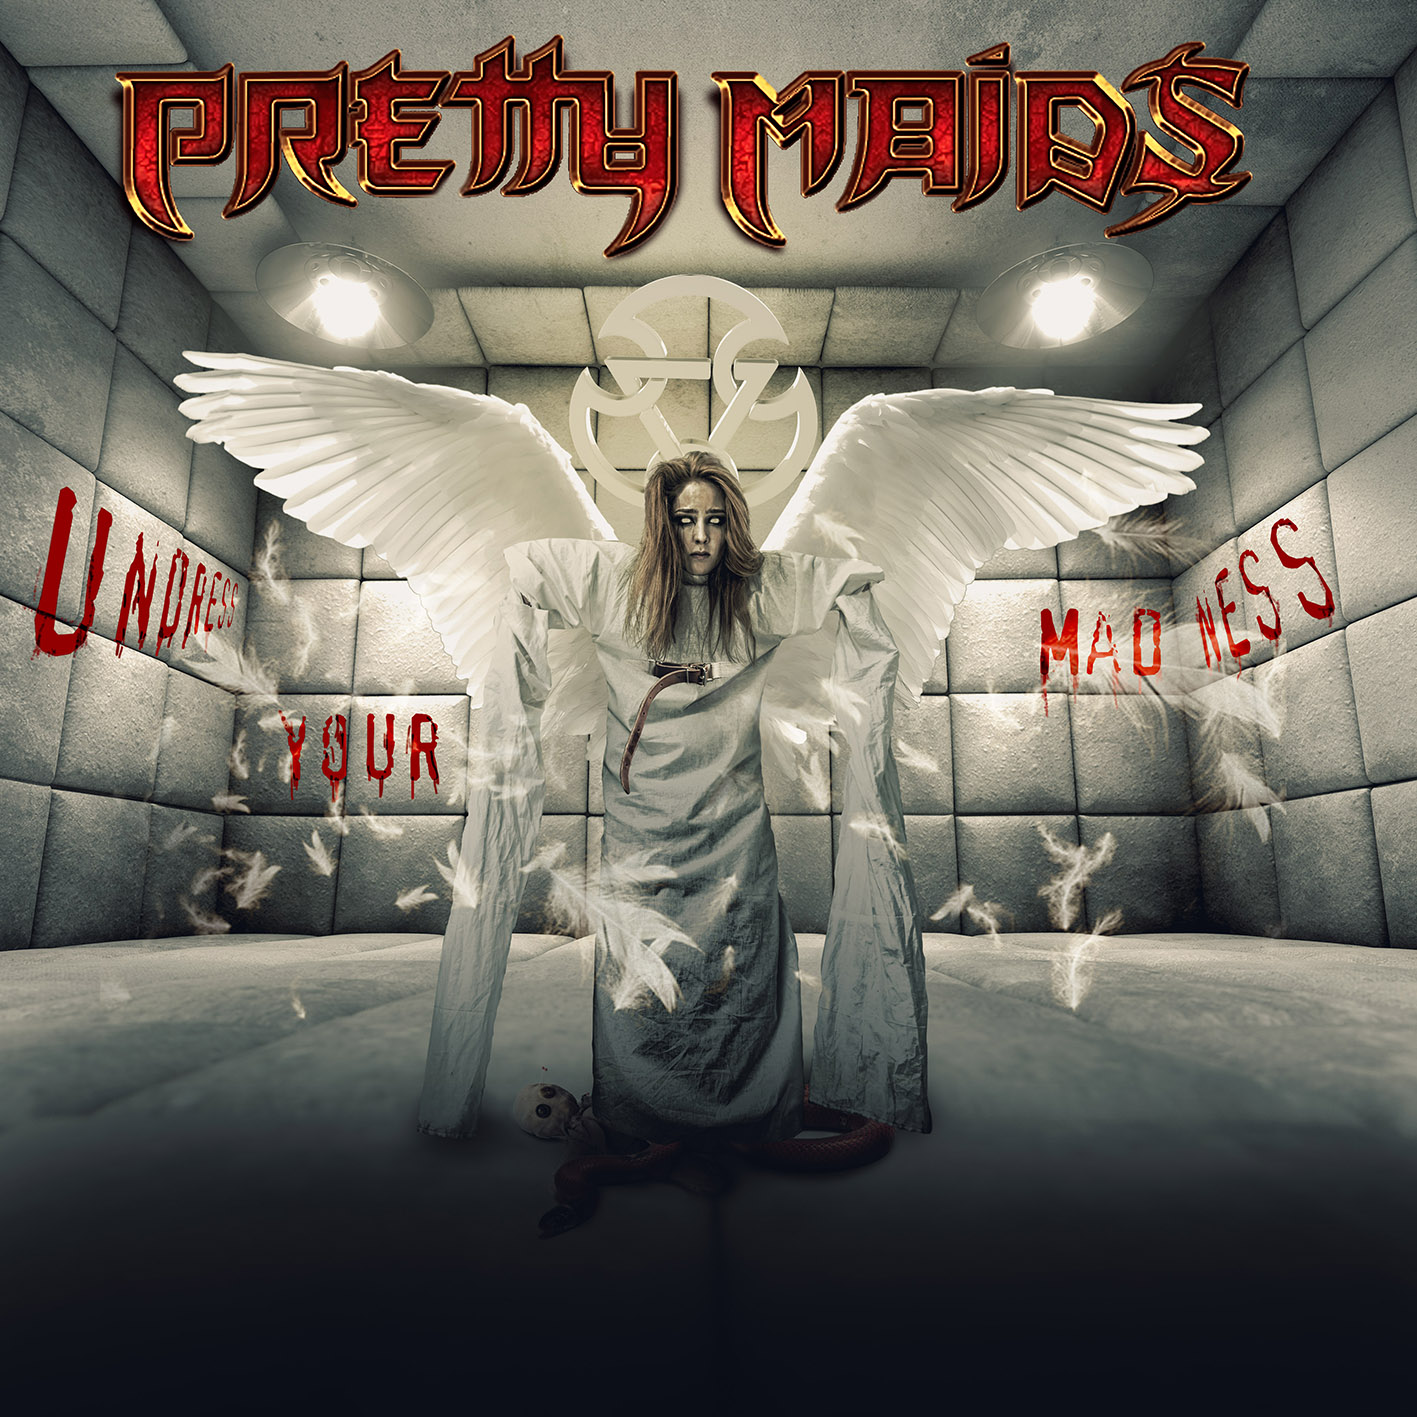 PRETTY MAIDS undress your madness COVER